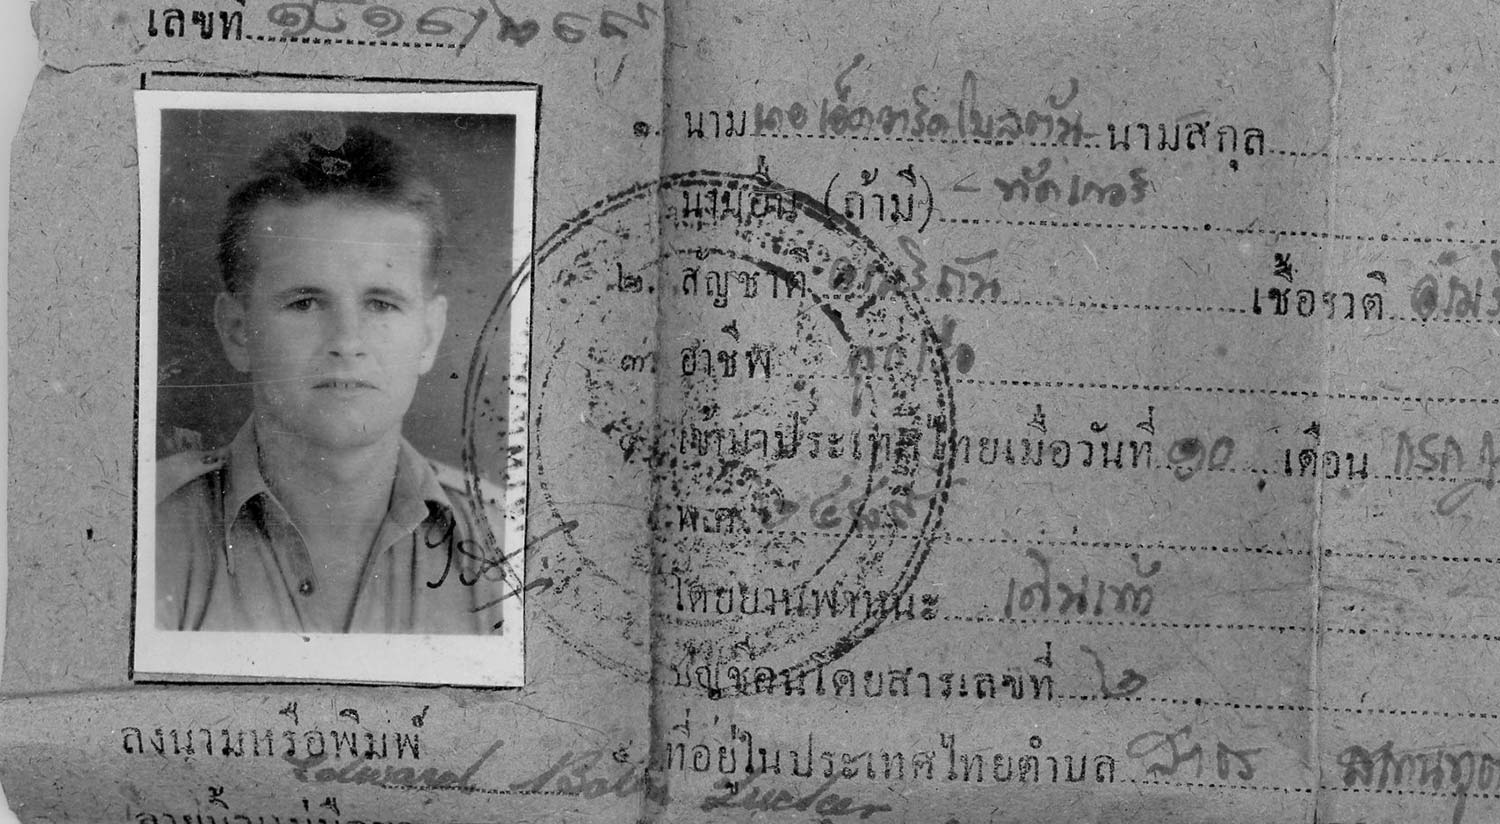 Far East Military Identification Papers